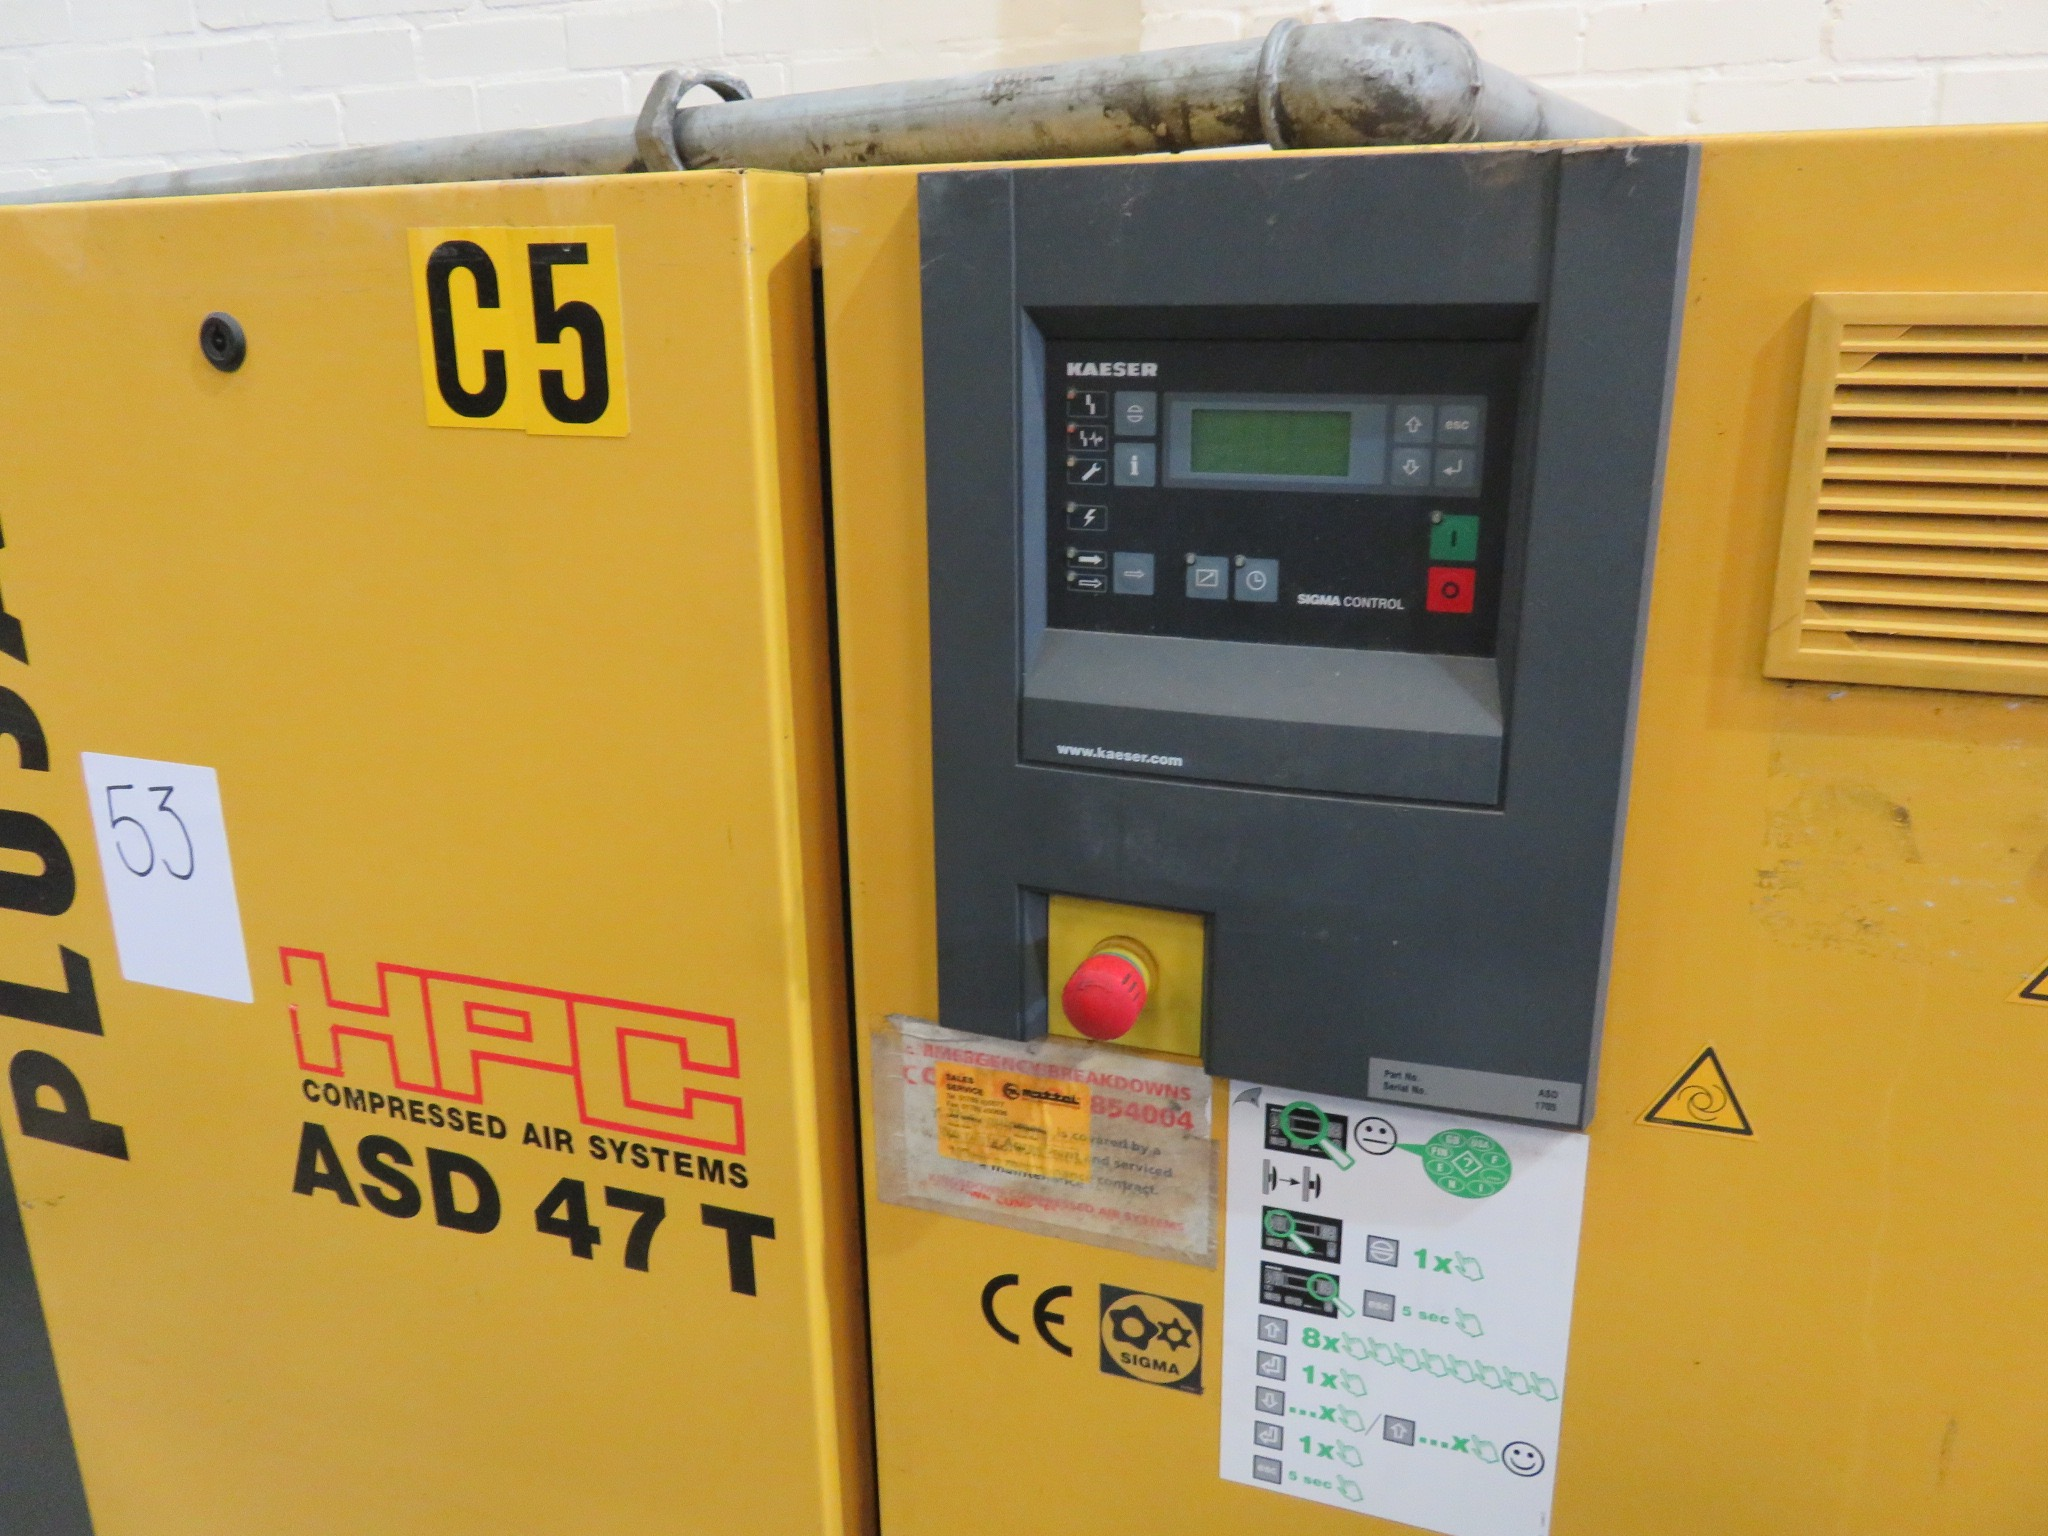 Lot 53 - Pulsair HPC Compressor. Air System. Type ASD 47T. Sigma control. SN 1705. Rated power 25.0kw Motor